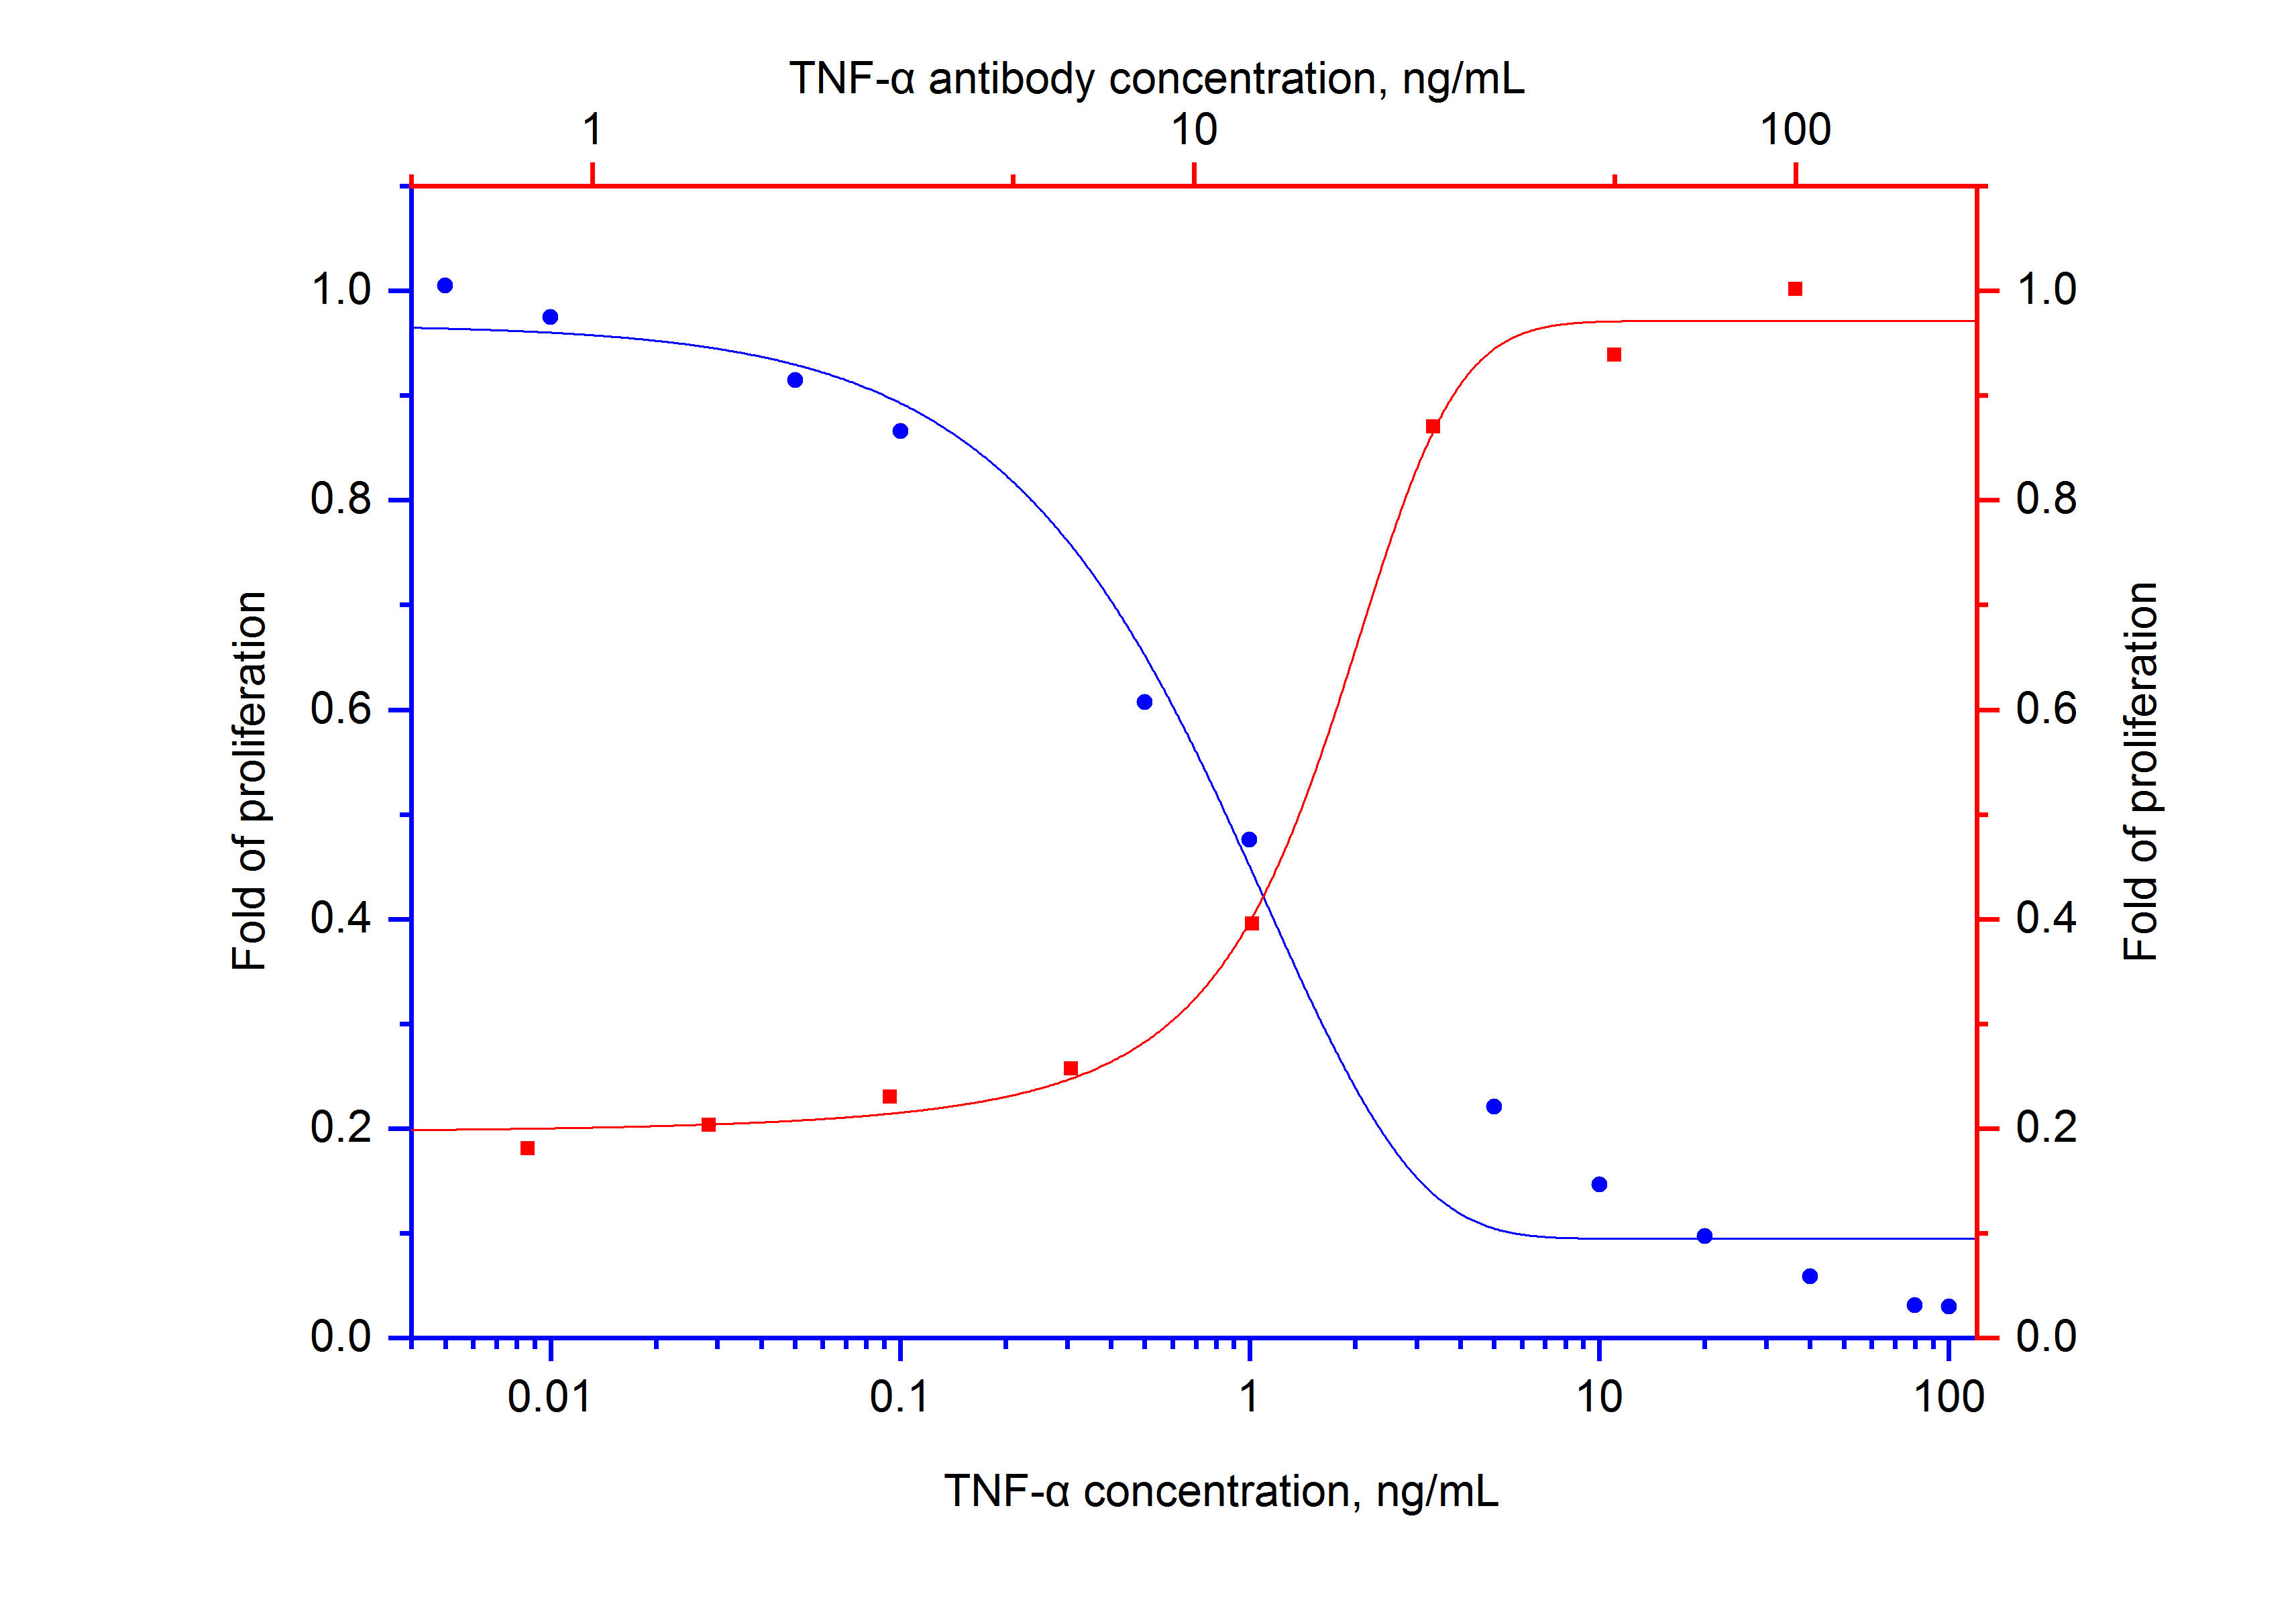 Recombinant Human TNF alpha (Catalog NO. HZ-1014) inihibits the growth of L-929 cell line in a dose dependent manner (blue curve).  The activity elicited by recombinant Human TNF alpha (5 ng/mL HZ-1014) is neutralized (red curve) by Mouse anti-human TNF alpha monoclonal antibody (Catalog NO. 69002-1-Ig).  The ND50 is typically 10-50ng/mL.